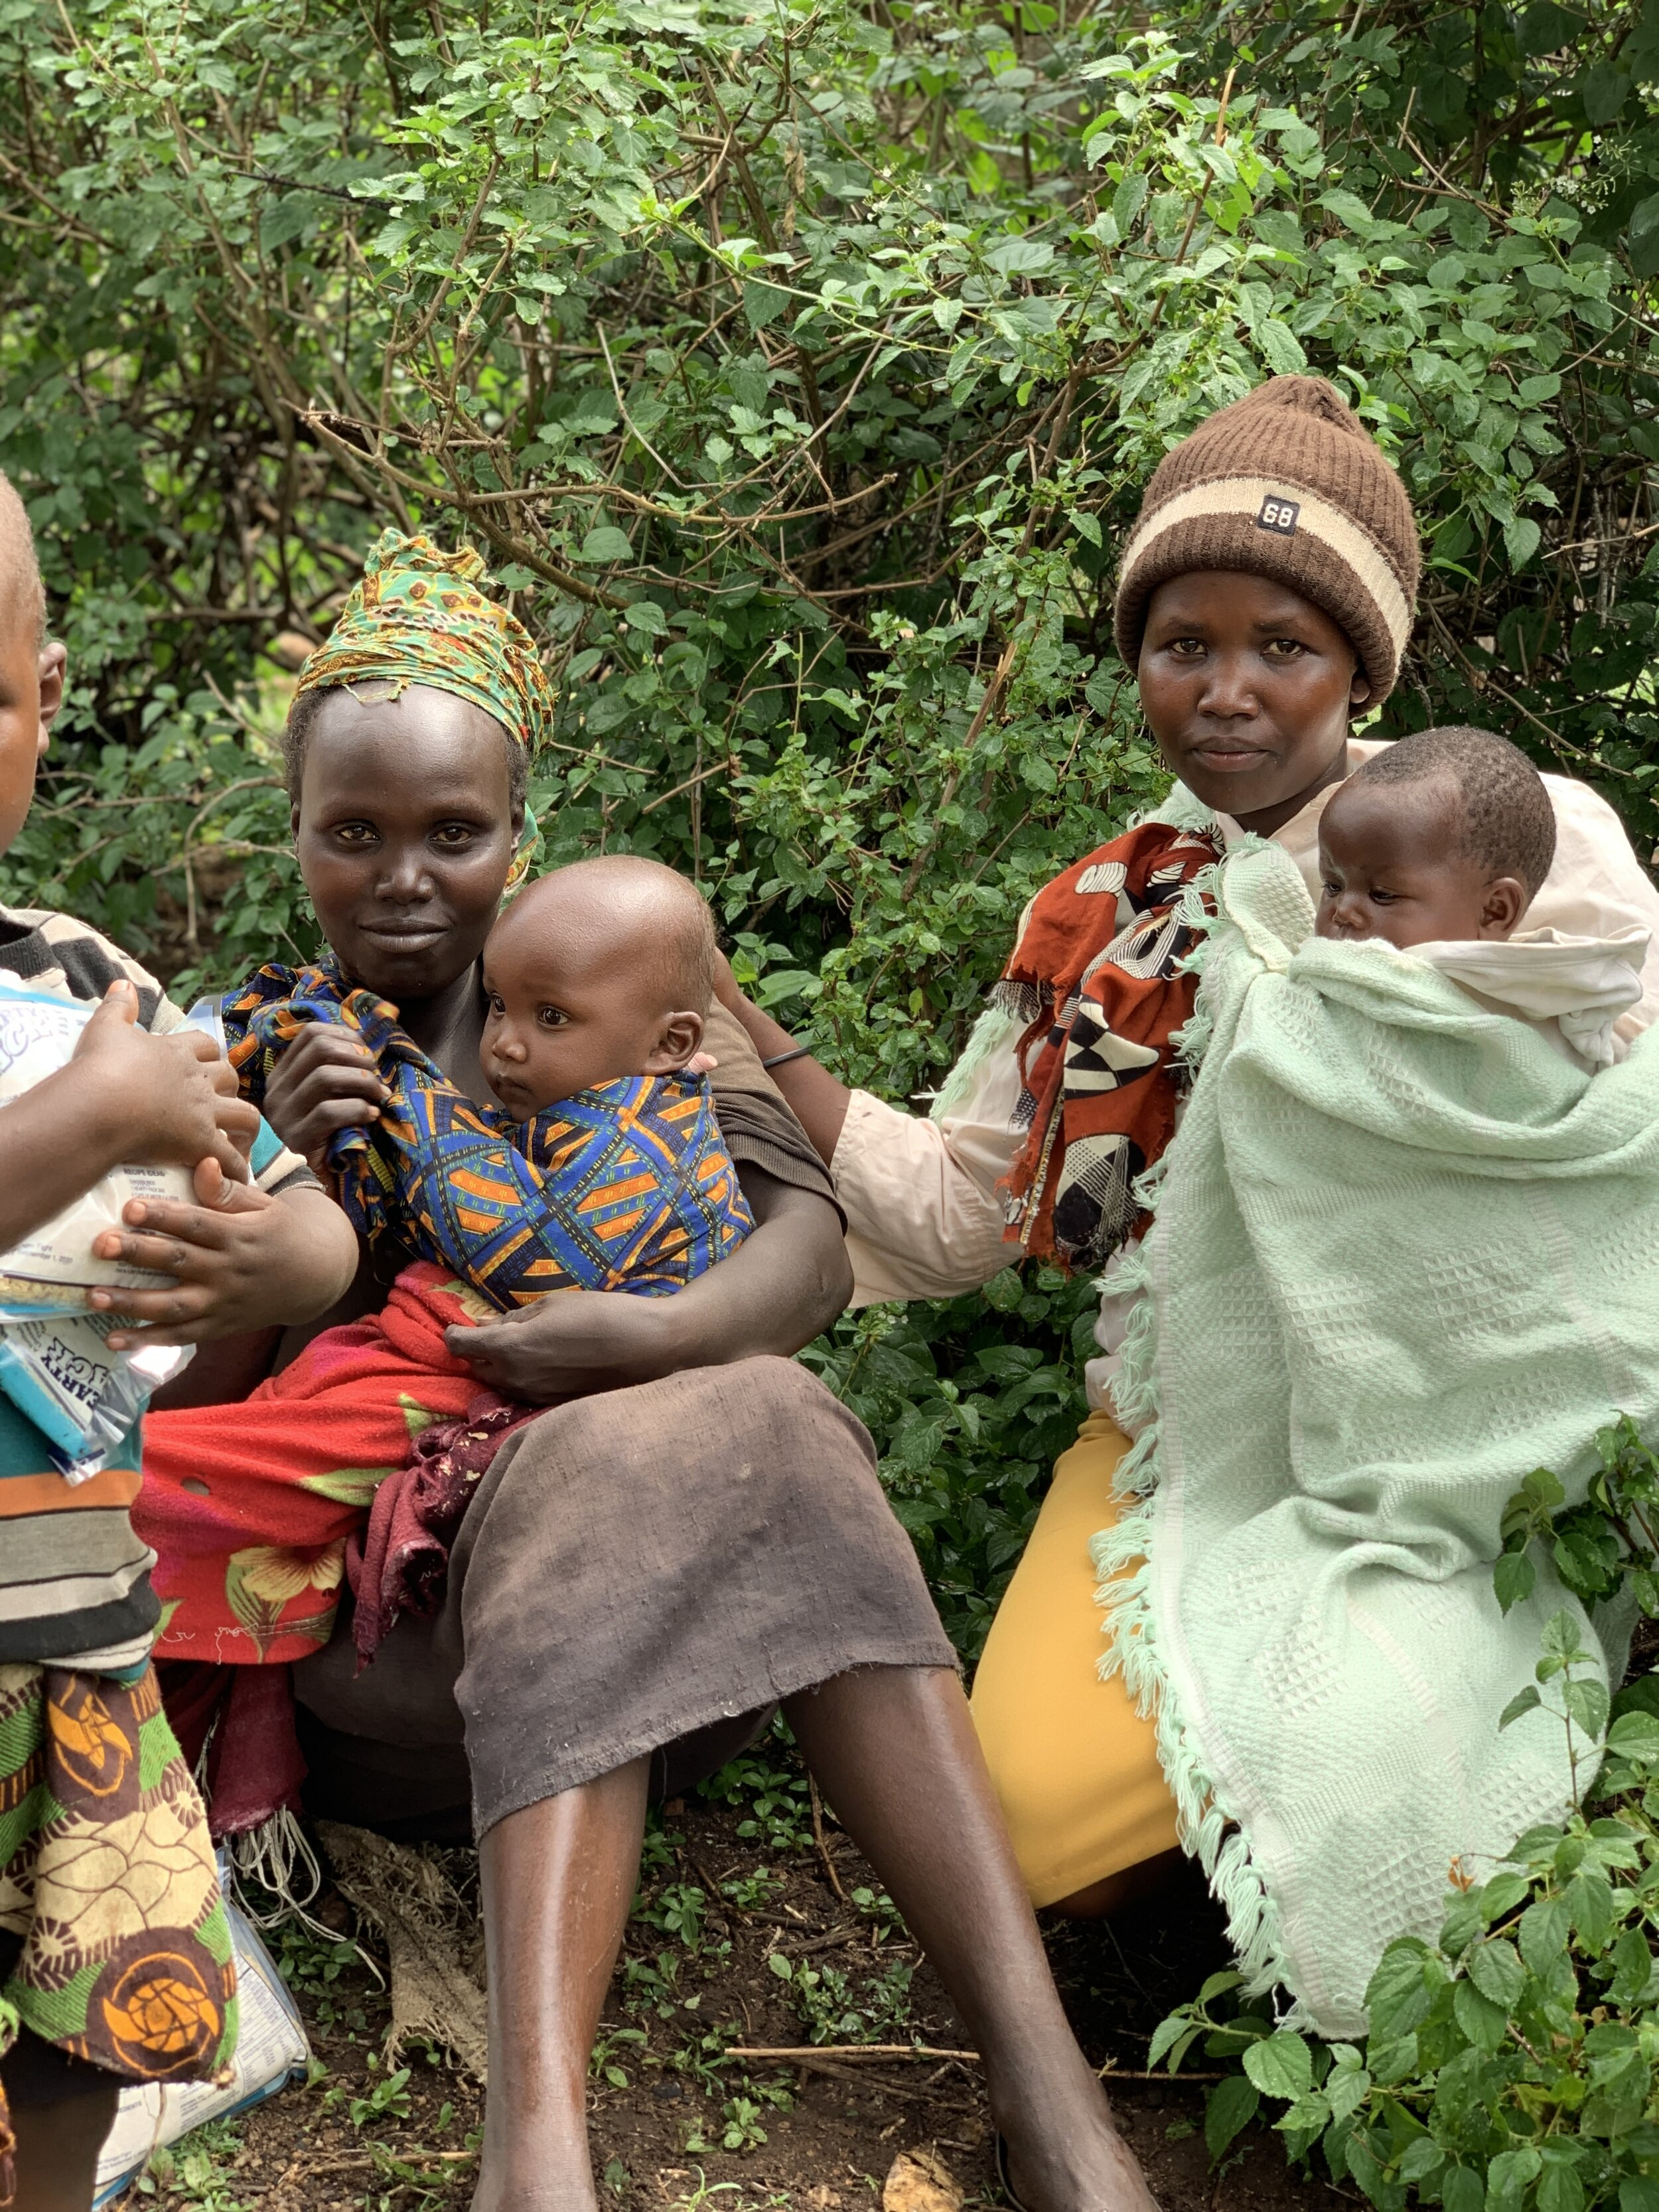 We met with mothers in Kenya to discuss the importance of proper nutrition for their growing children.